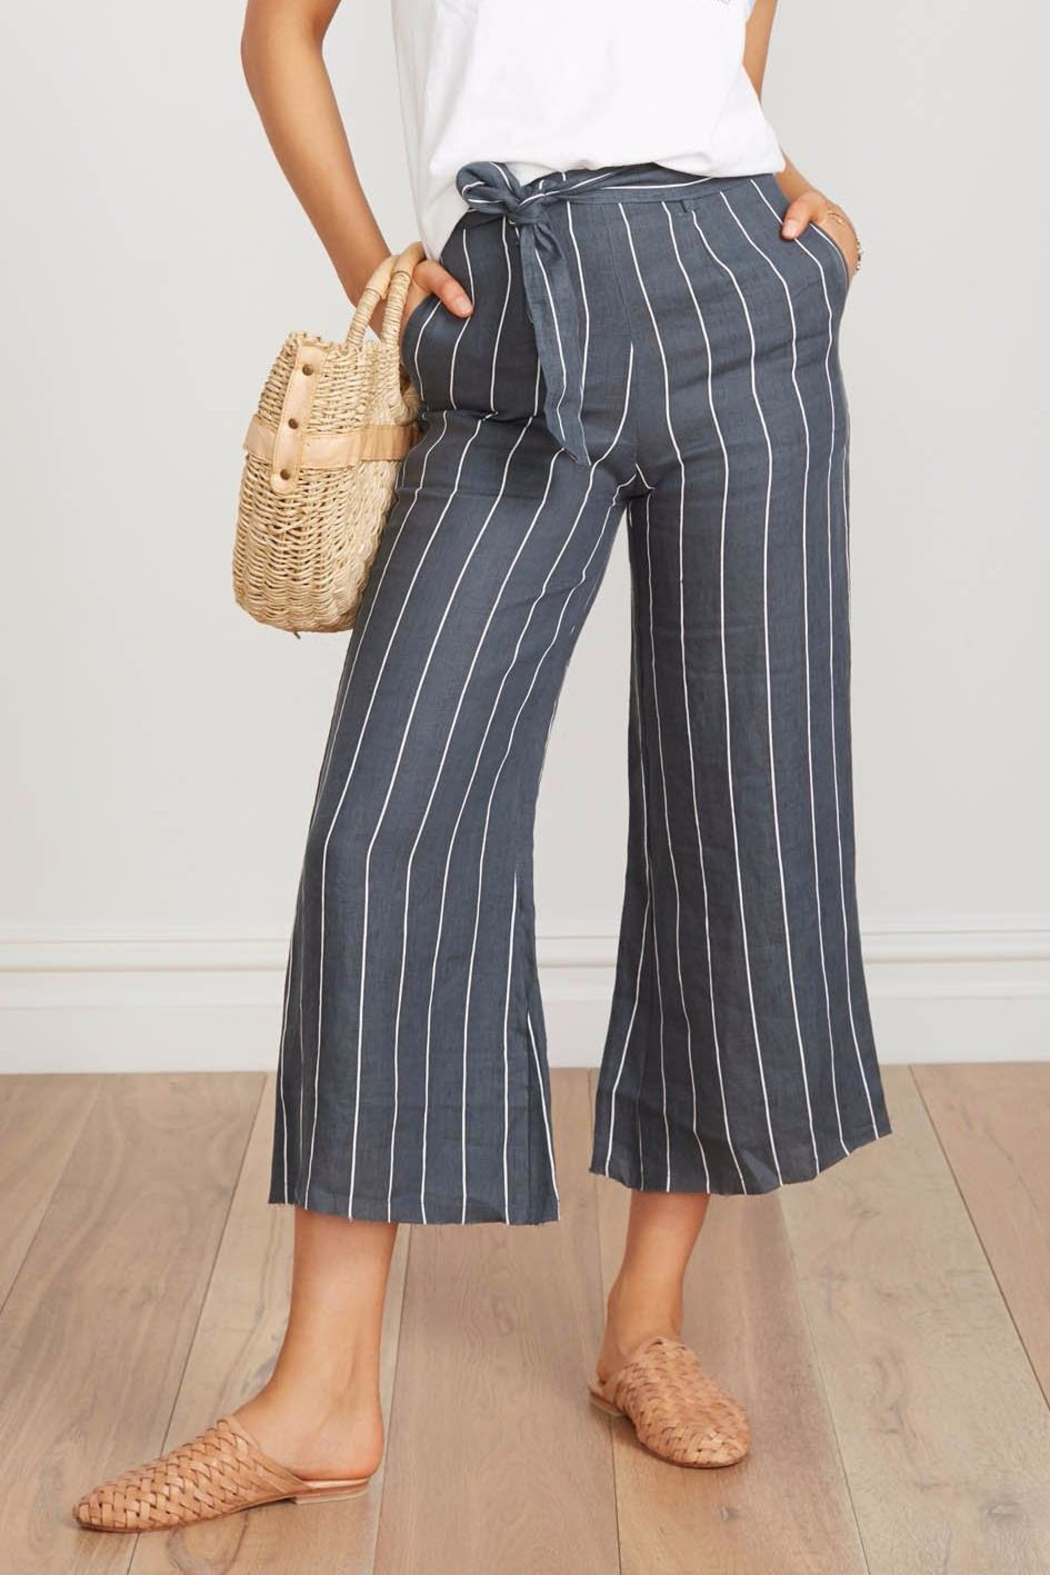 Faithfull The Brand Striped Linen Culottes - Main Image